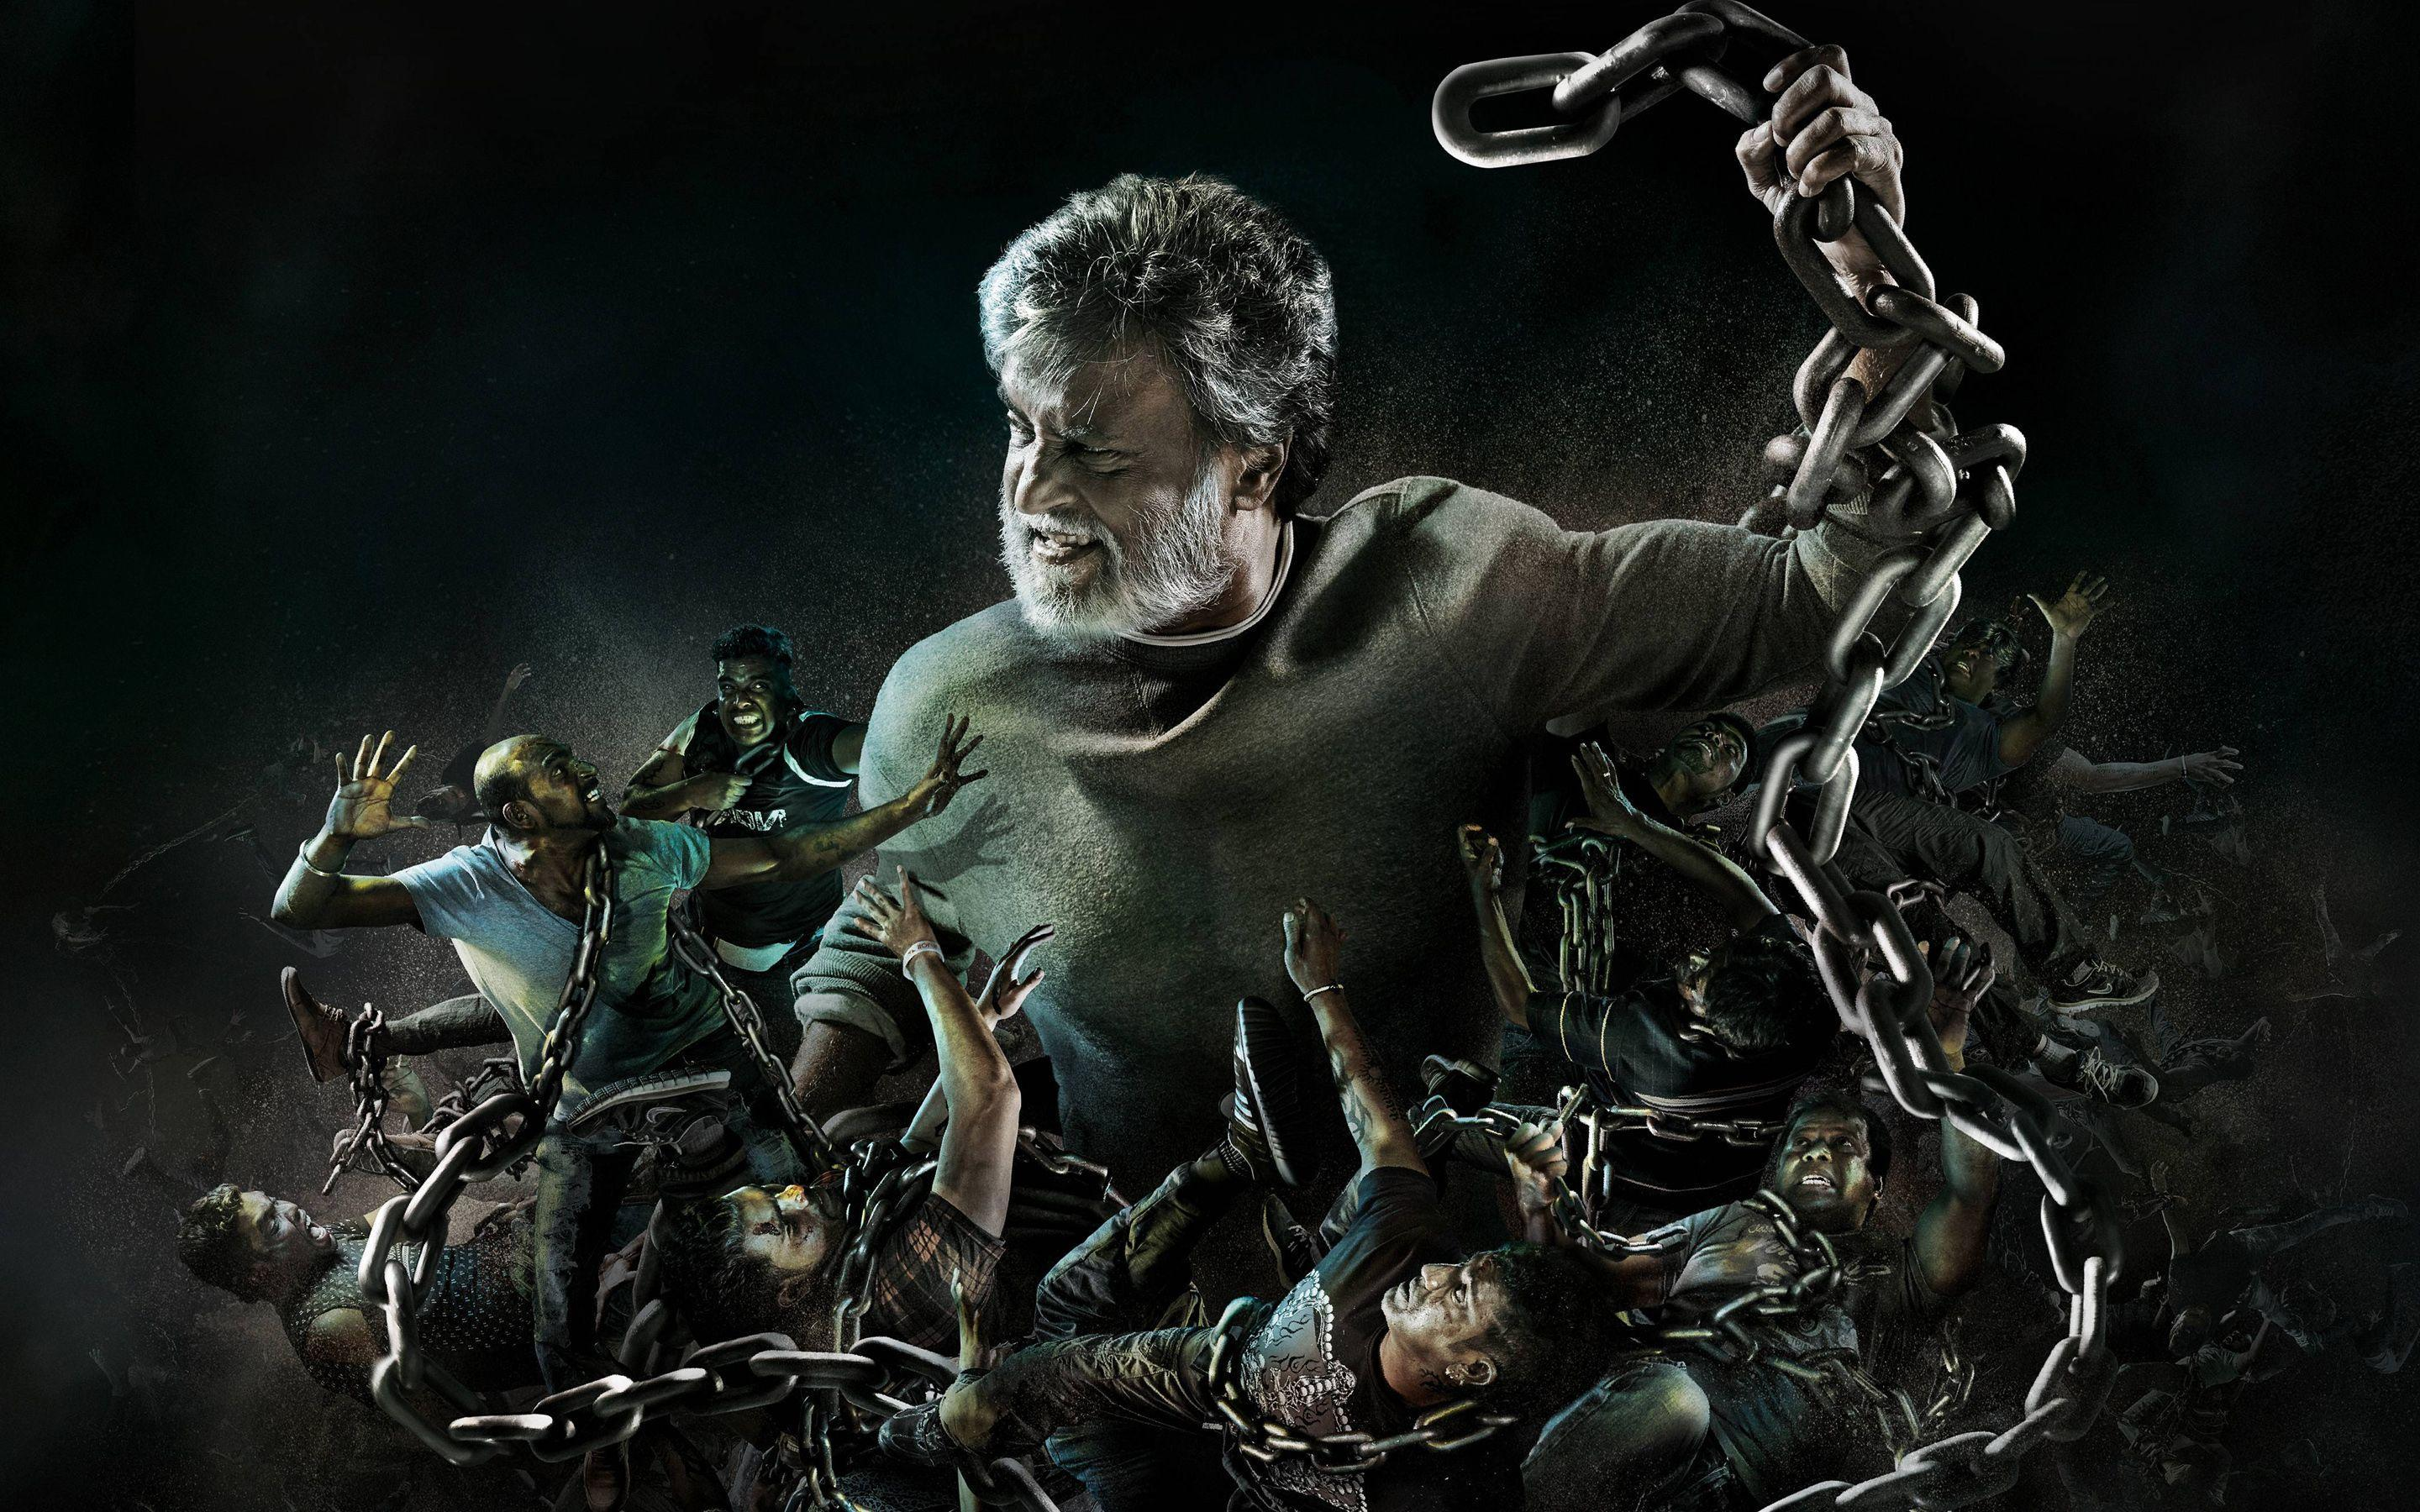 Rajinikanth Kabali Wallpapers | HD Wallpapers